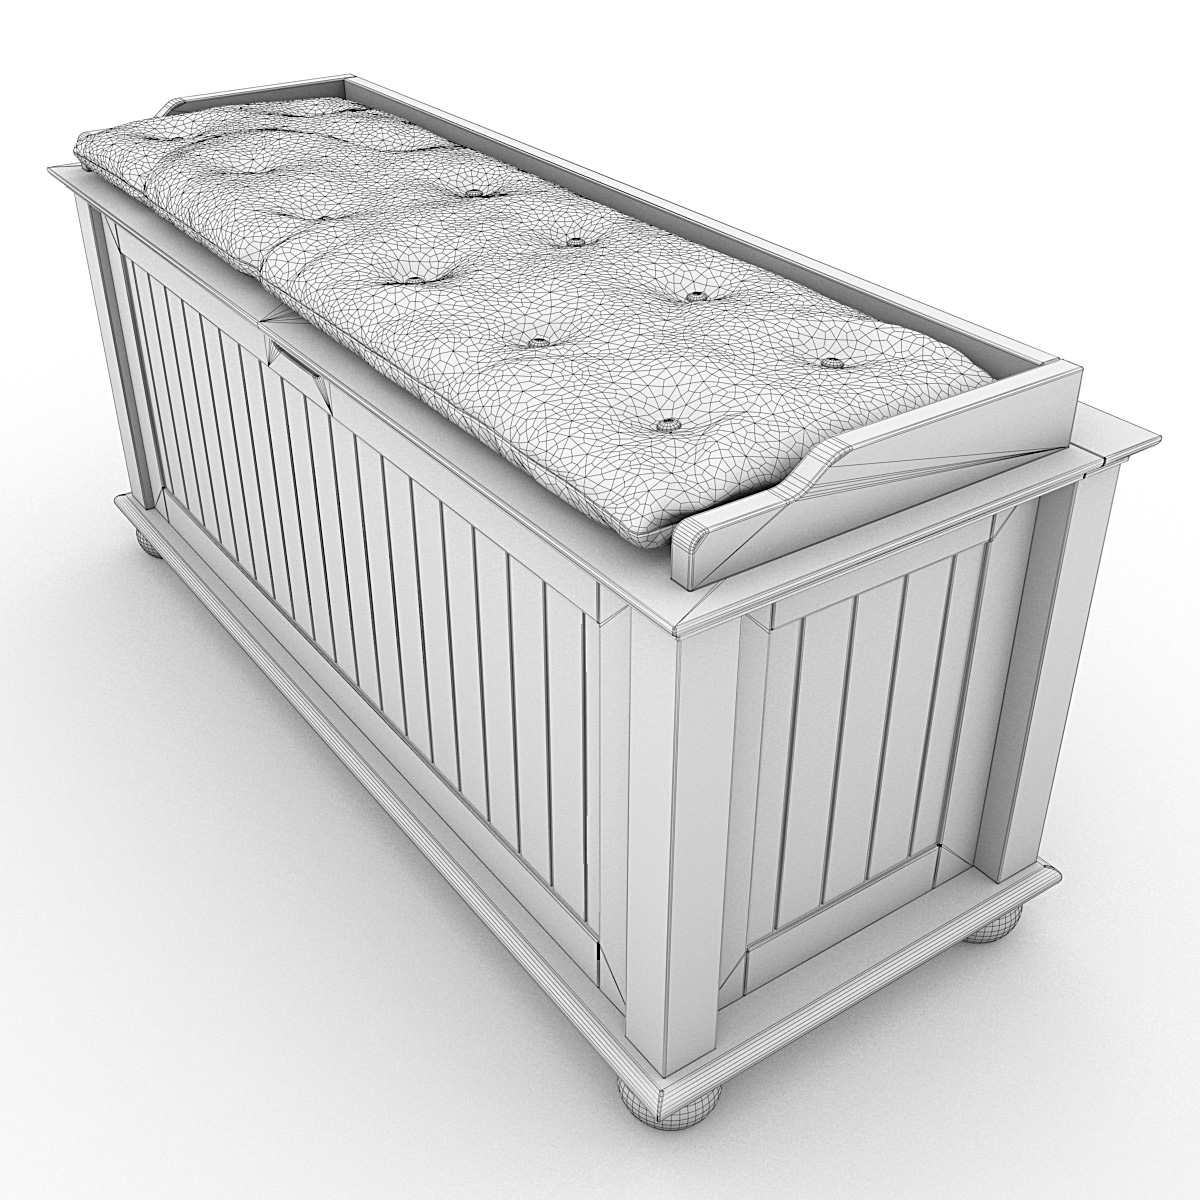 Storage Bench With Cushion 02 3d Model Max Obj 3ds Lwo